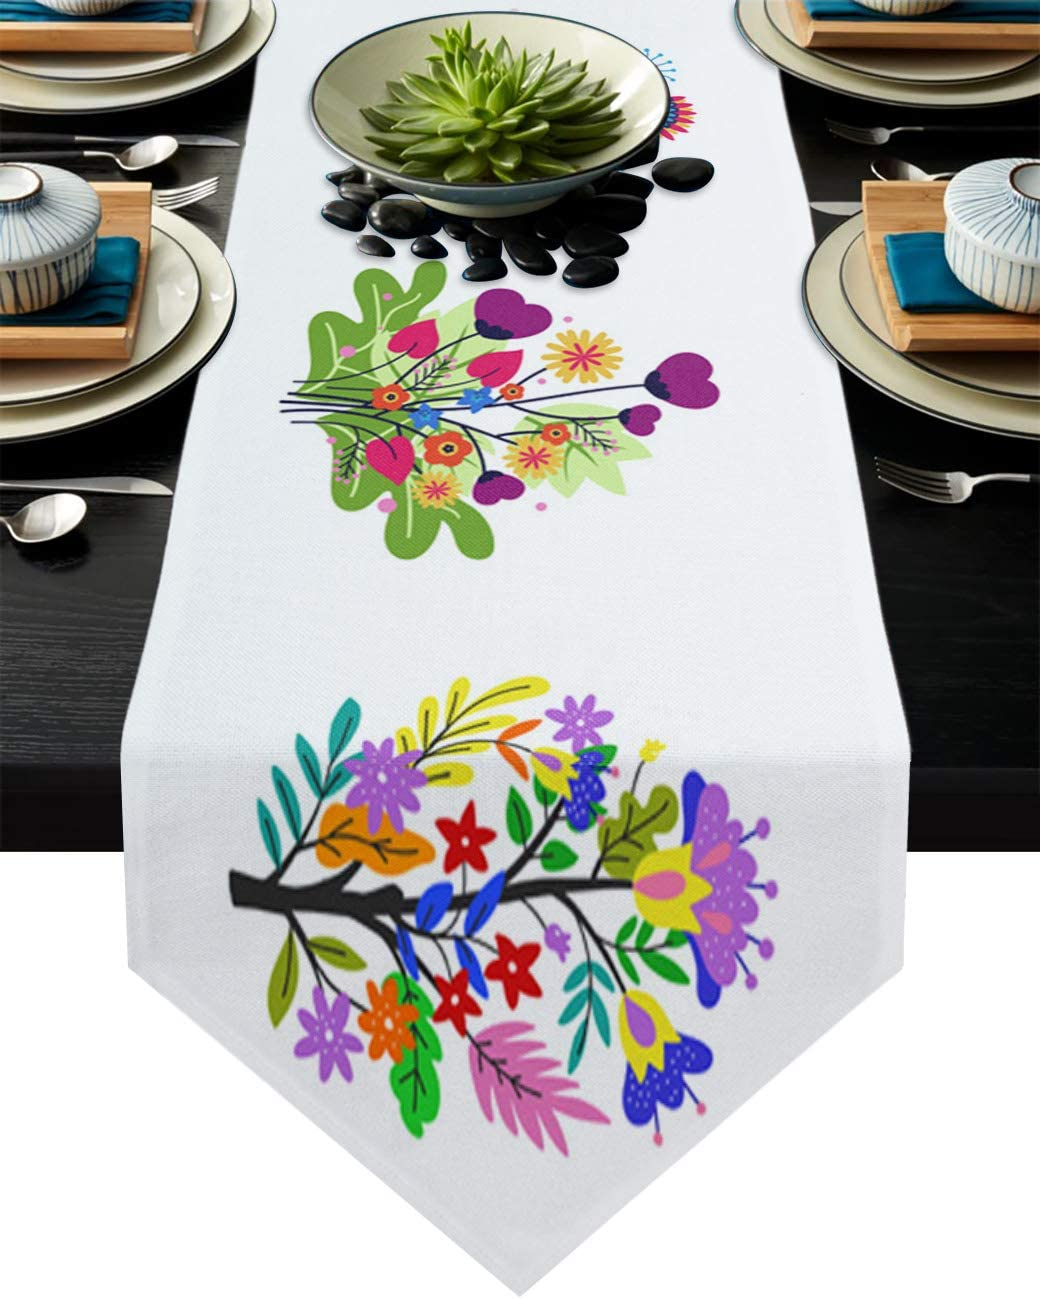 Amazon Com Colorsum Floral Summer Geometric Pattern Table Runner For Dining Room Minimalist Blossoming Flower Illustrations Table Decor Farmhouse Runner For Kitchen Wedding Bridal Shower Decorations 16x72inch Home Kitchen